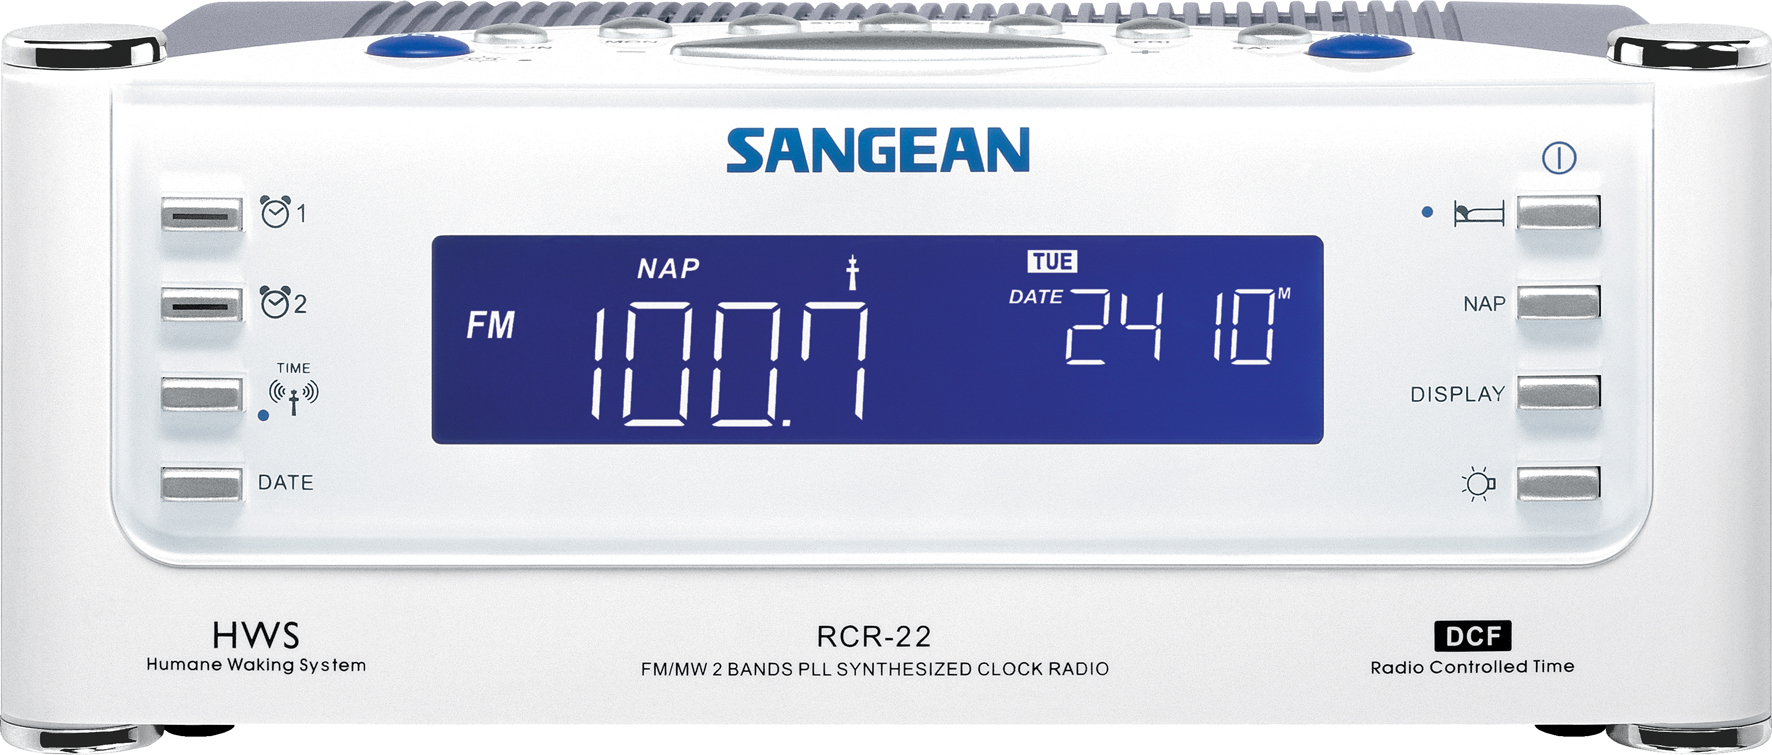 RCR-22, digital clock radio, white